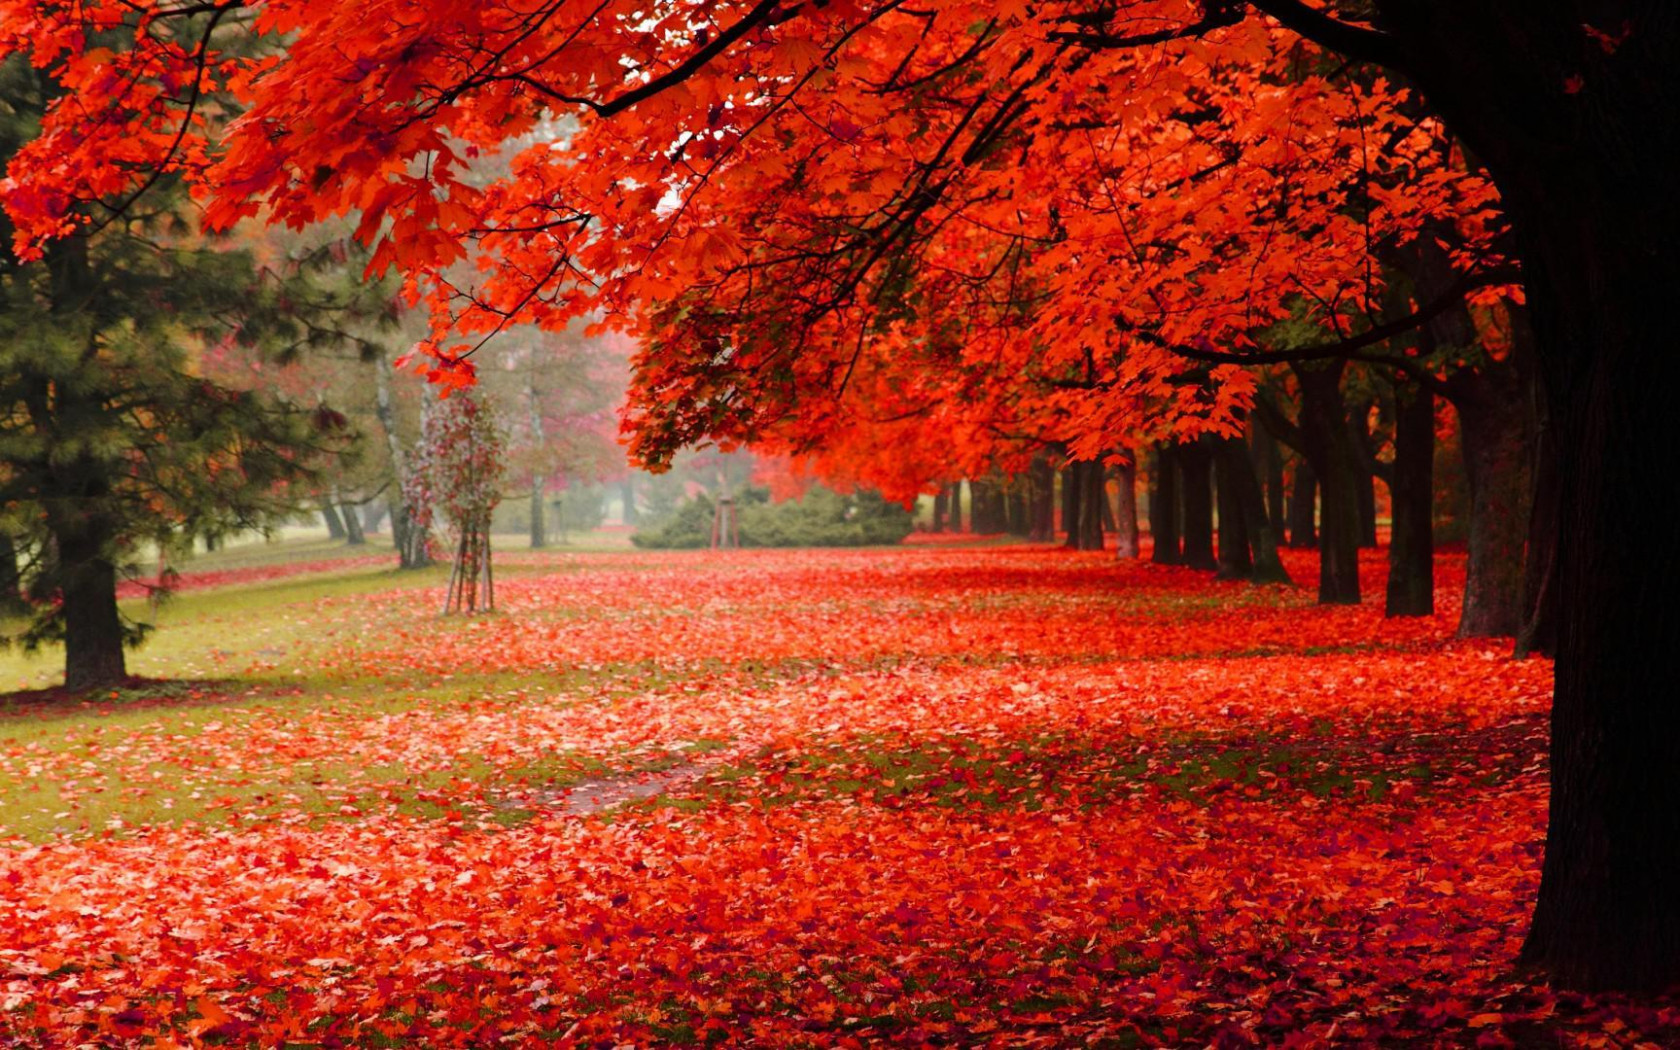 Fall Heart Leaves Background Wallpaper Wallpaper Natural Park Autumn Red Leaves Autumn